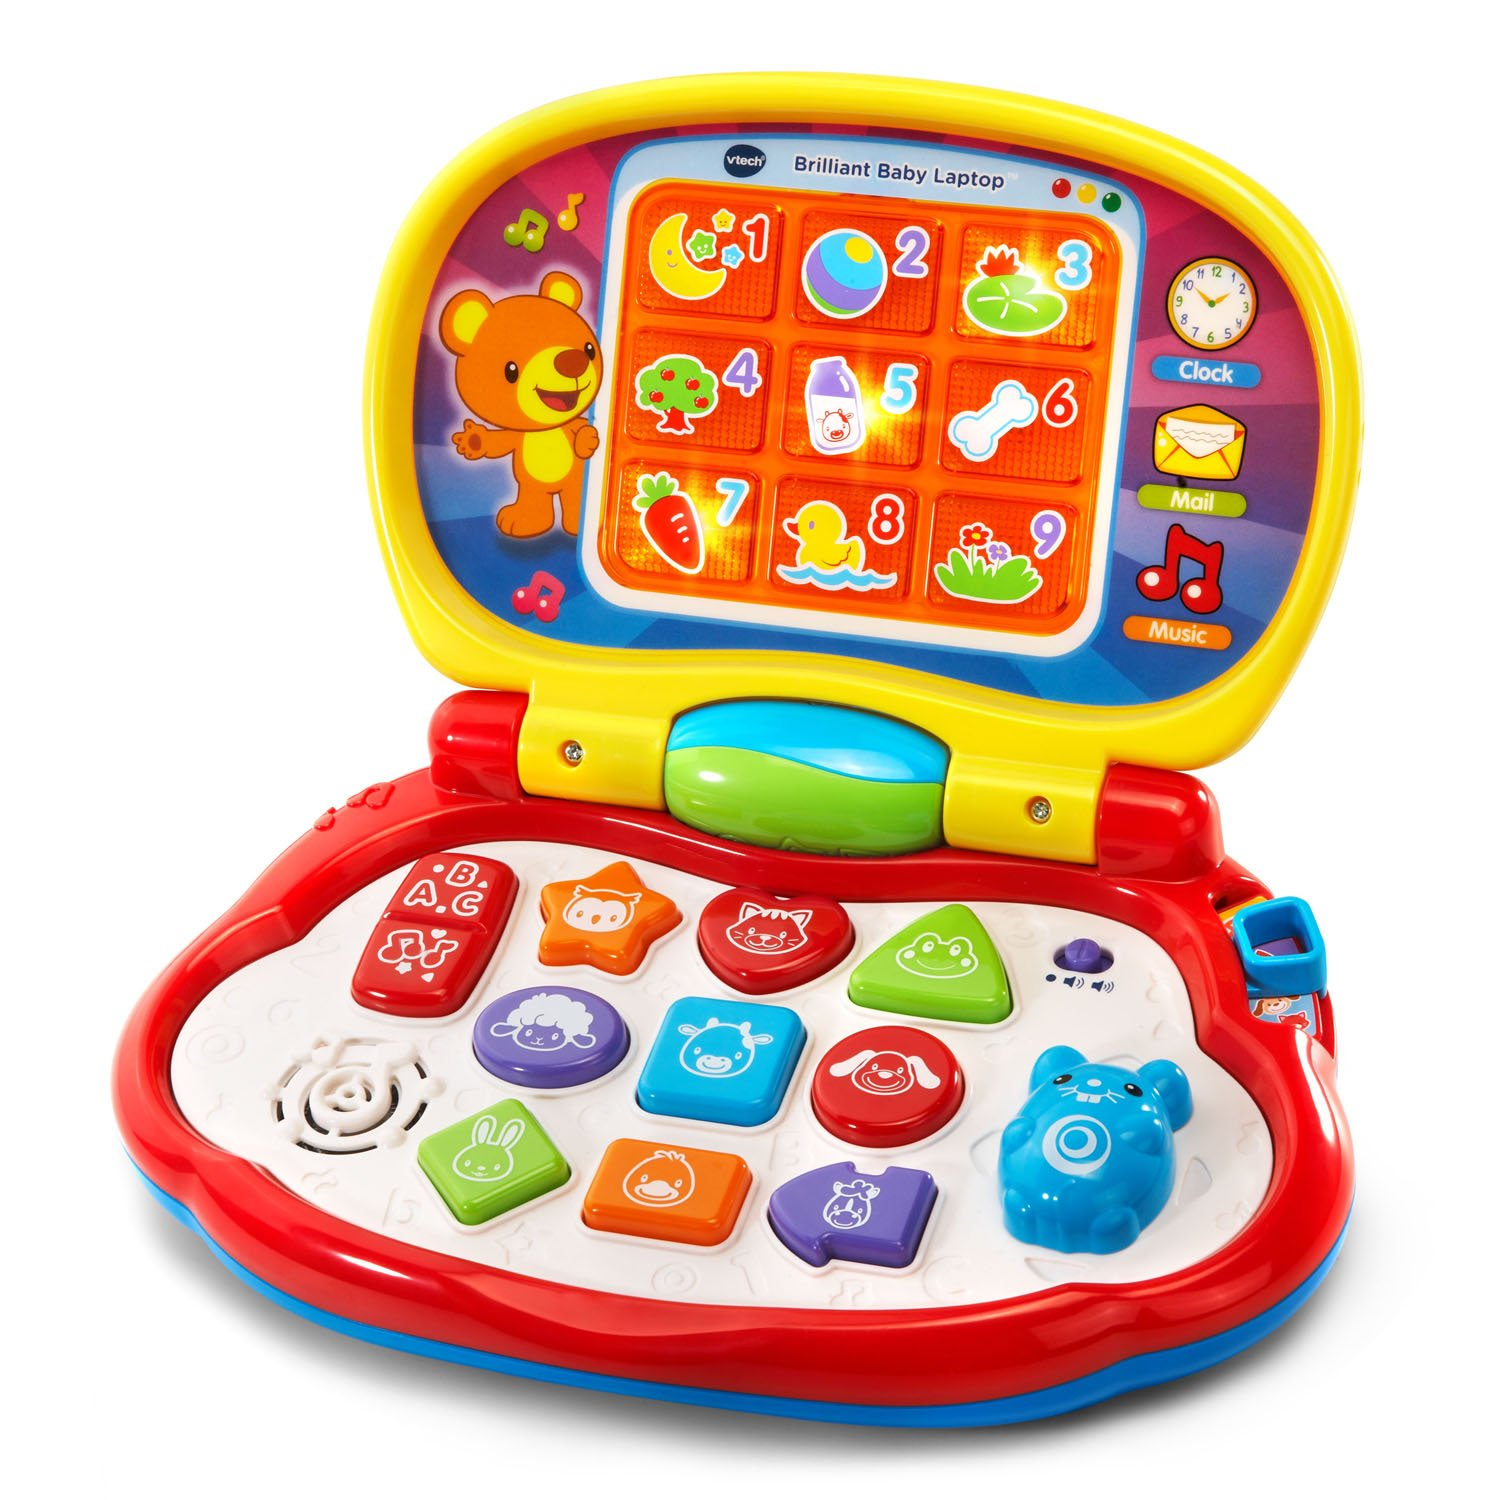 VTech Brilliant Baby Laptop,red by VTech (Image #1)